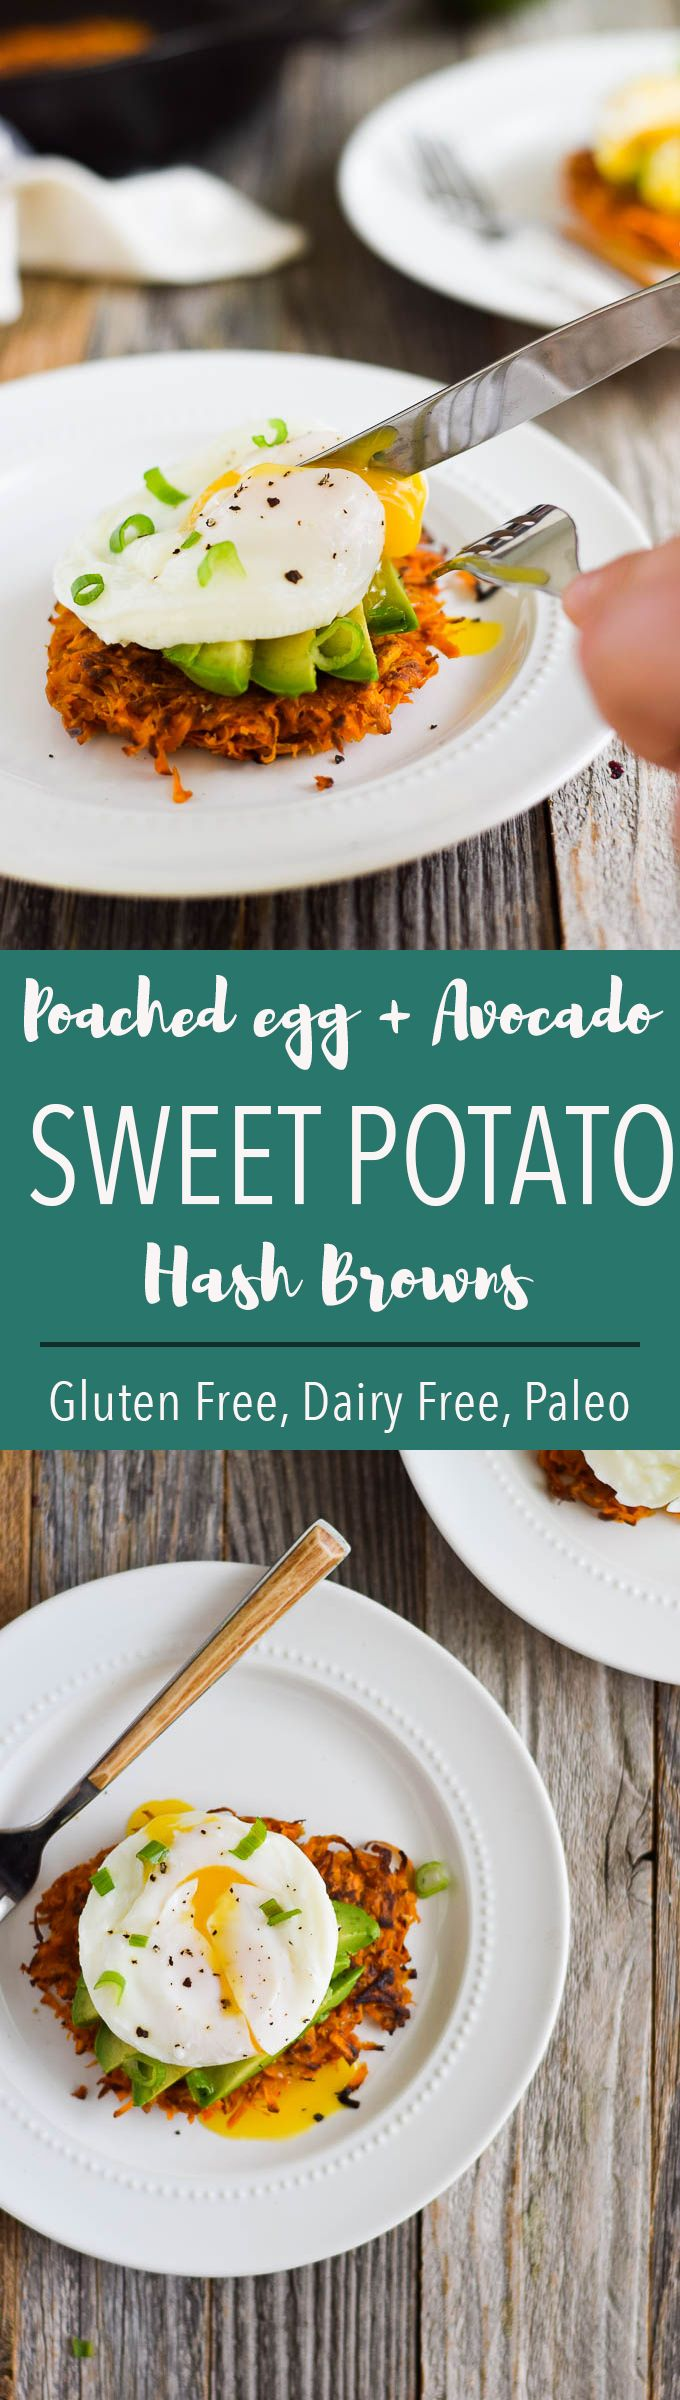 Up your brunch game with sweet potato rounds, eggs + avocado! {Gluten Free, Dairy Free, Paleo}                                                                                                                                                                                 More